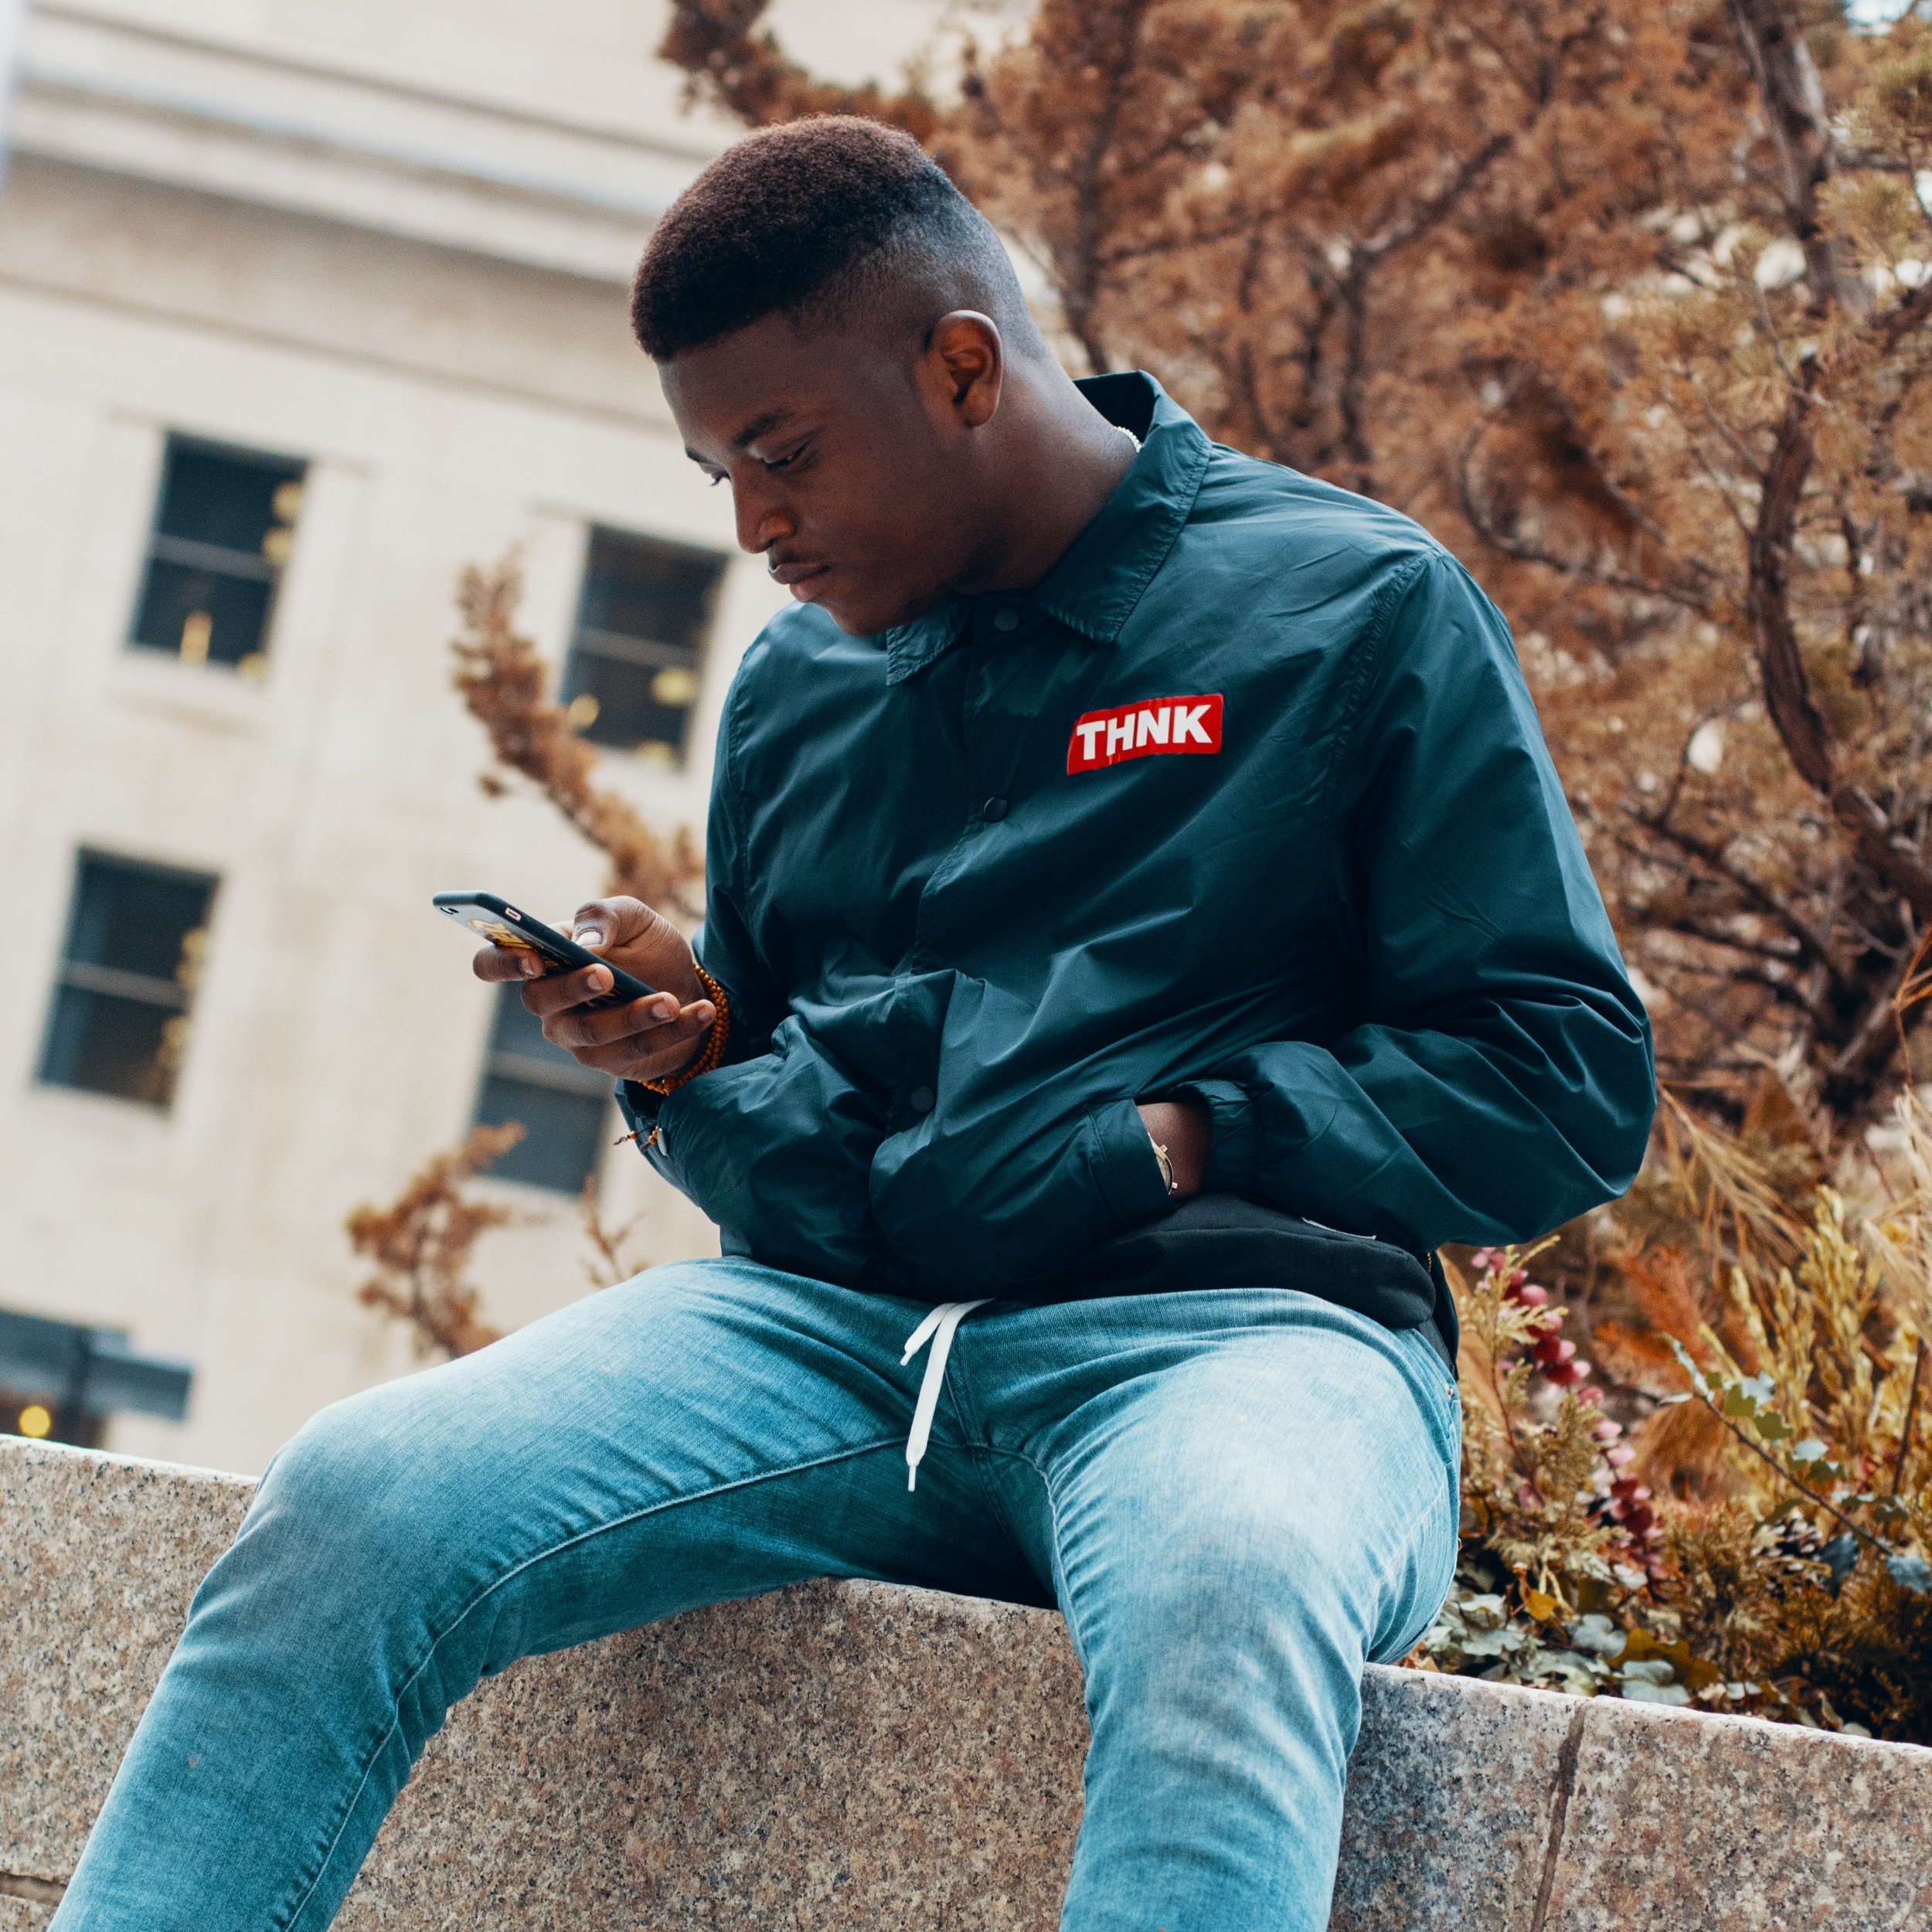 Brand Ambassador - Do you love supporting black businesses? Sign-up now and help make technology a strength for black communities.